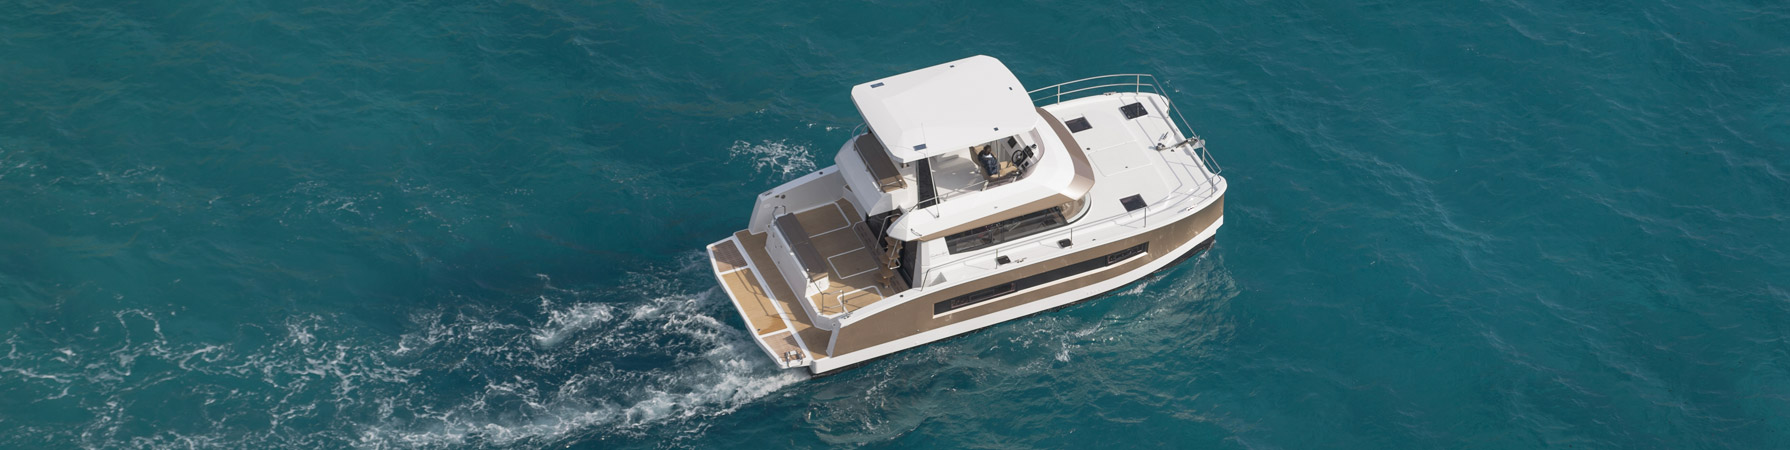 Luxury Catamarans Amp Motor Yachts